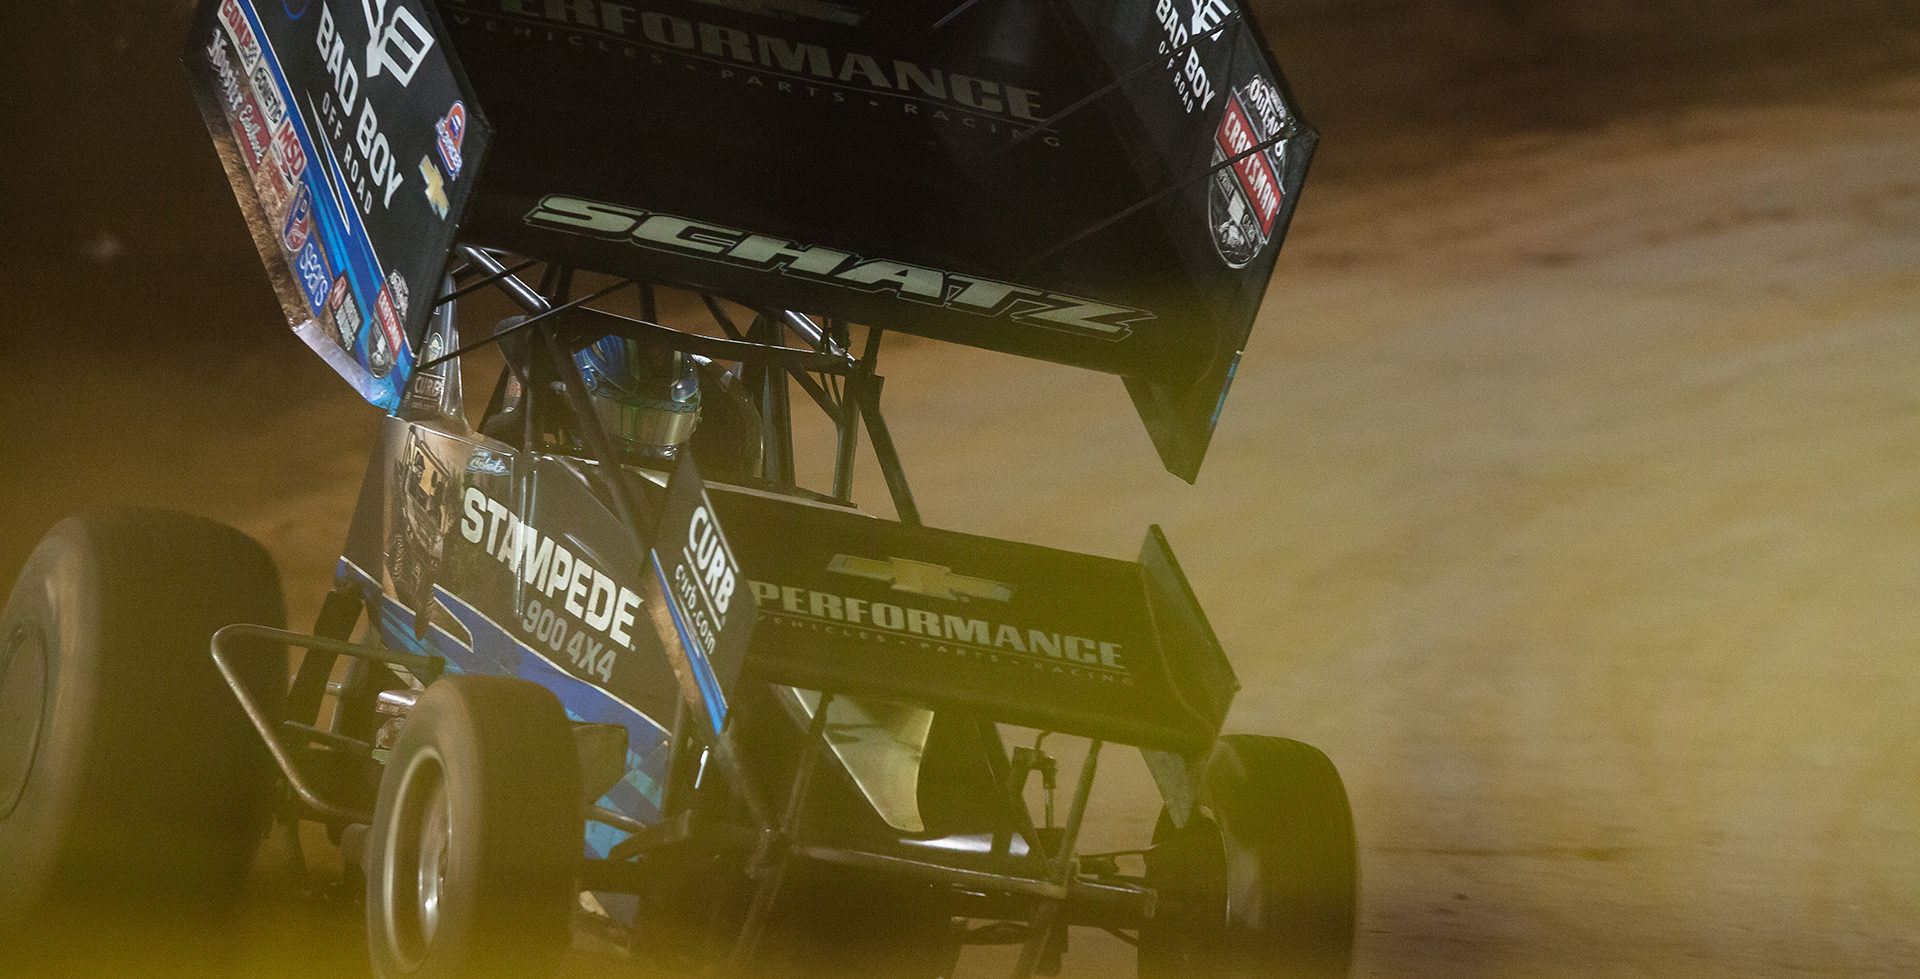 Donny Schatz leading the Feature with 5 laps to go at The 2016 WoO World Finals in Charlotte, N. Schatz passed David Gravel for the lead on lap 15 and never looked back on his way to his 25th Feature win with The World of Outlaws. ( Jeffrey Turford / TDP )